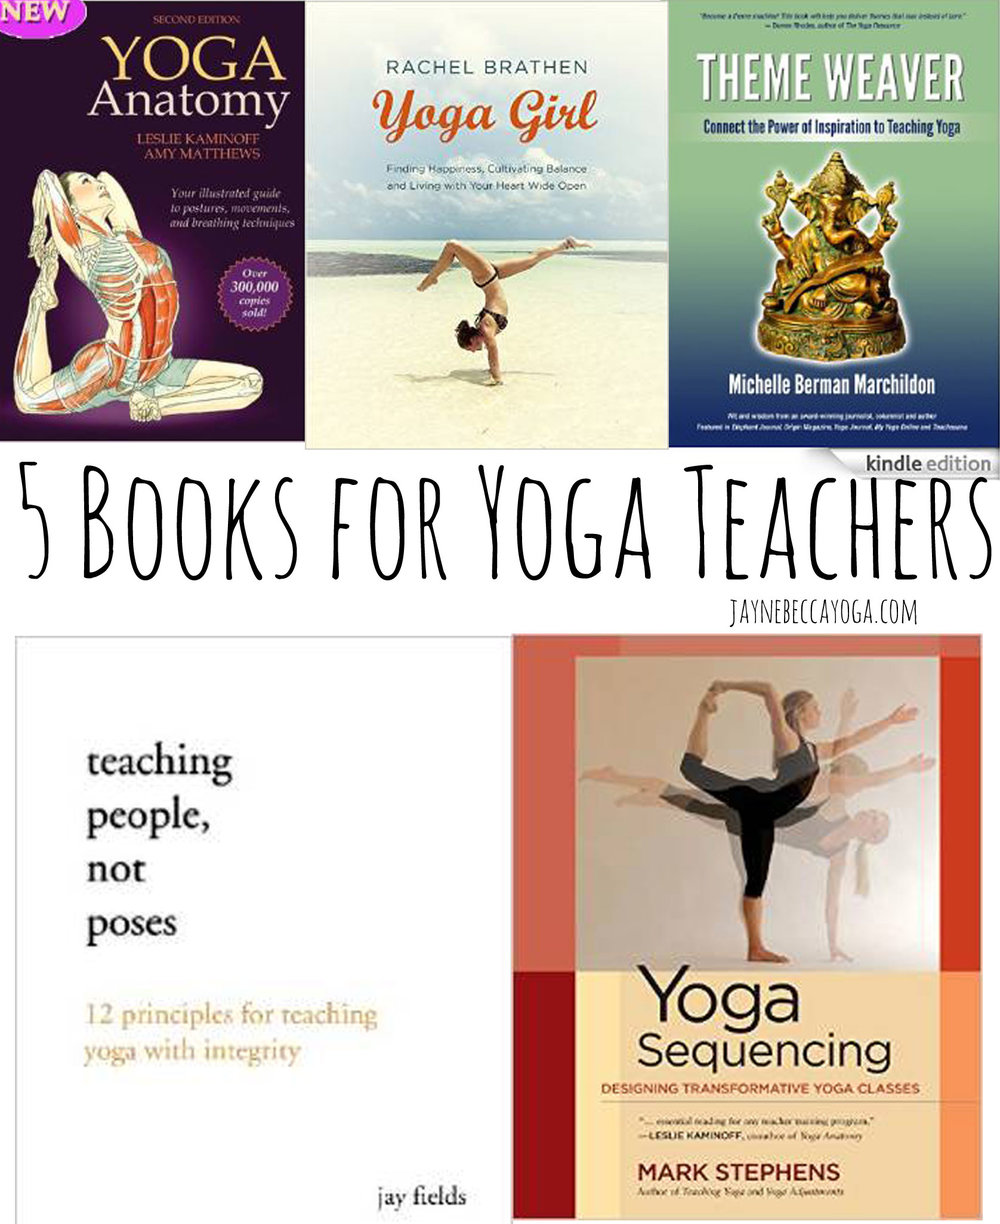 Yoga-Books.jpg